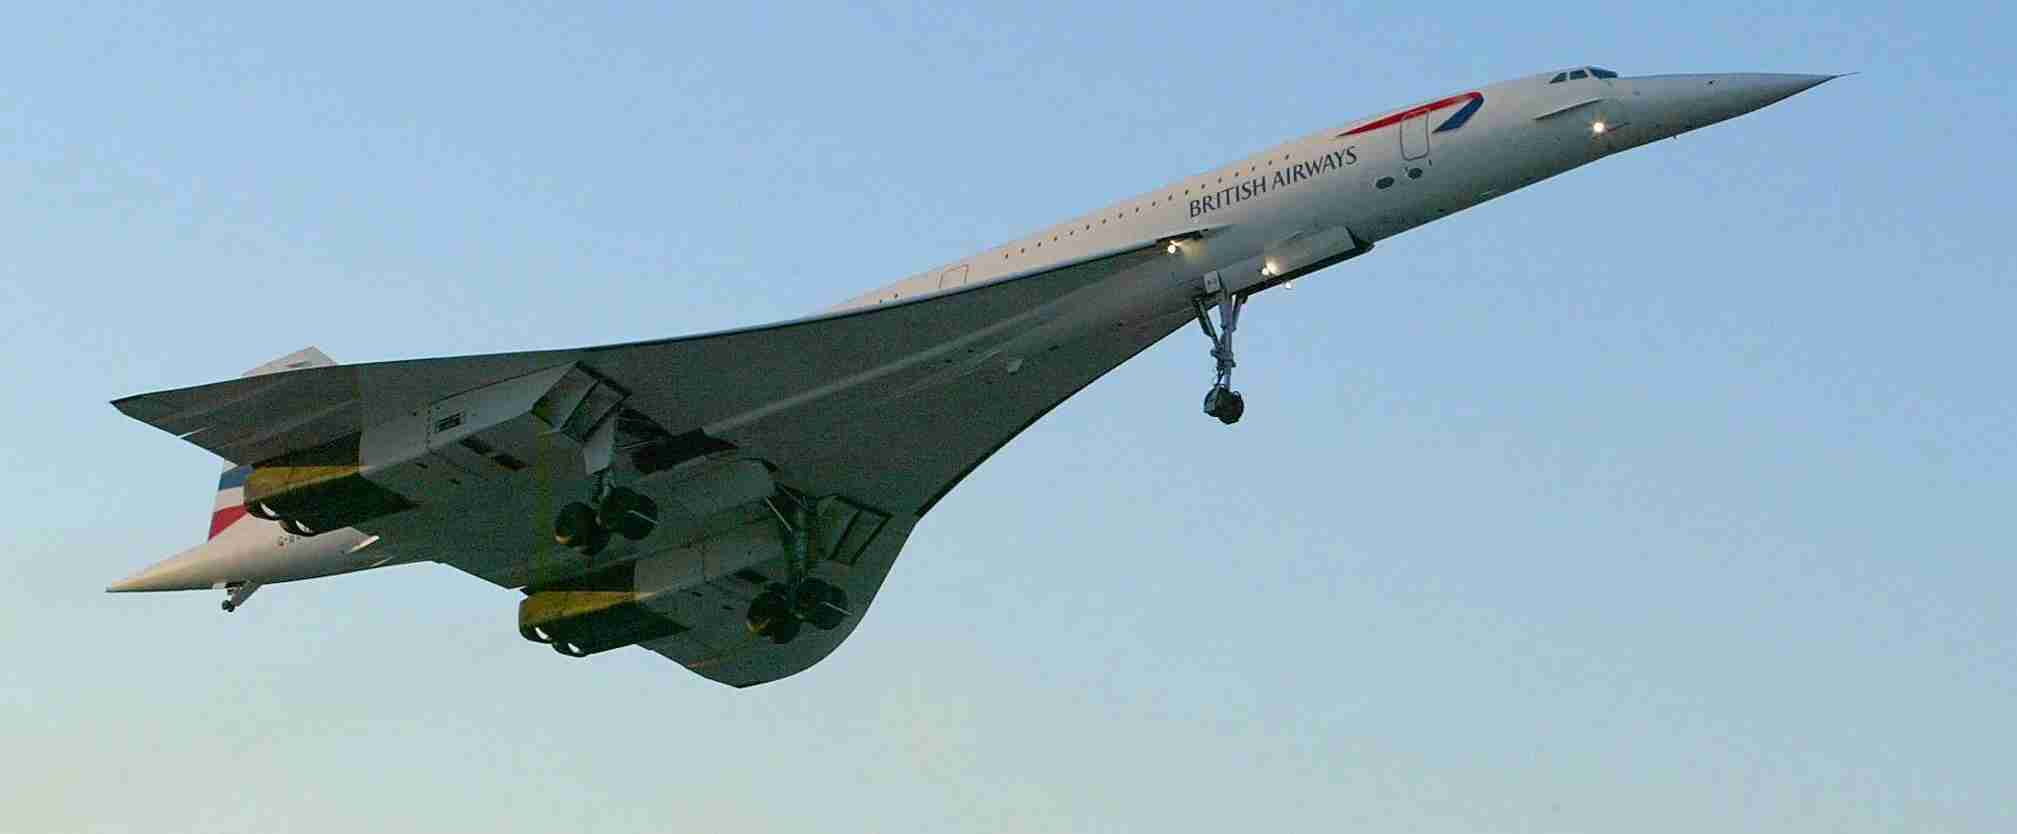 The final British Airways Concorde flight lifts off from John F. Kennedy Airport in New York on its final voyage to London, 24 October 2003. The flight was Concorde